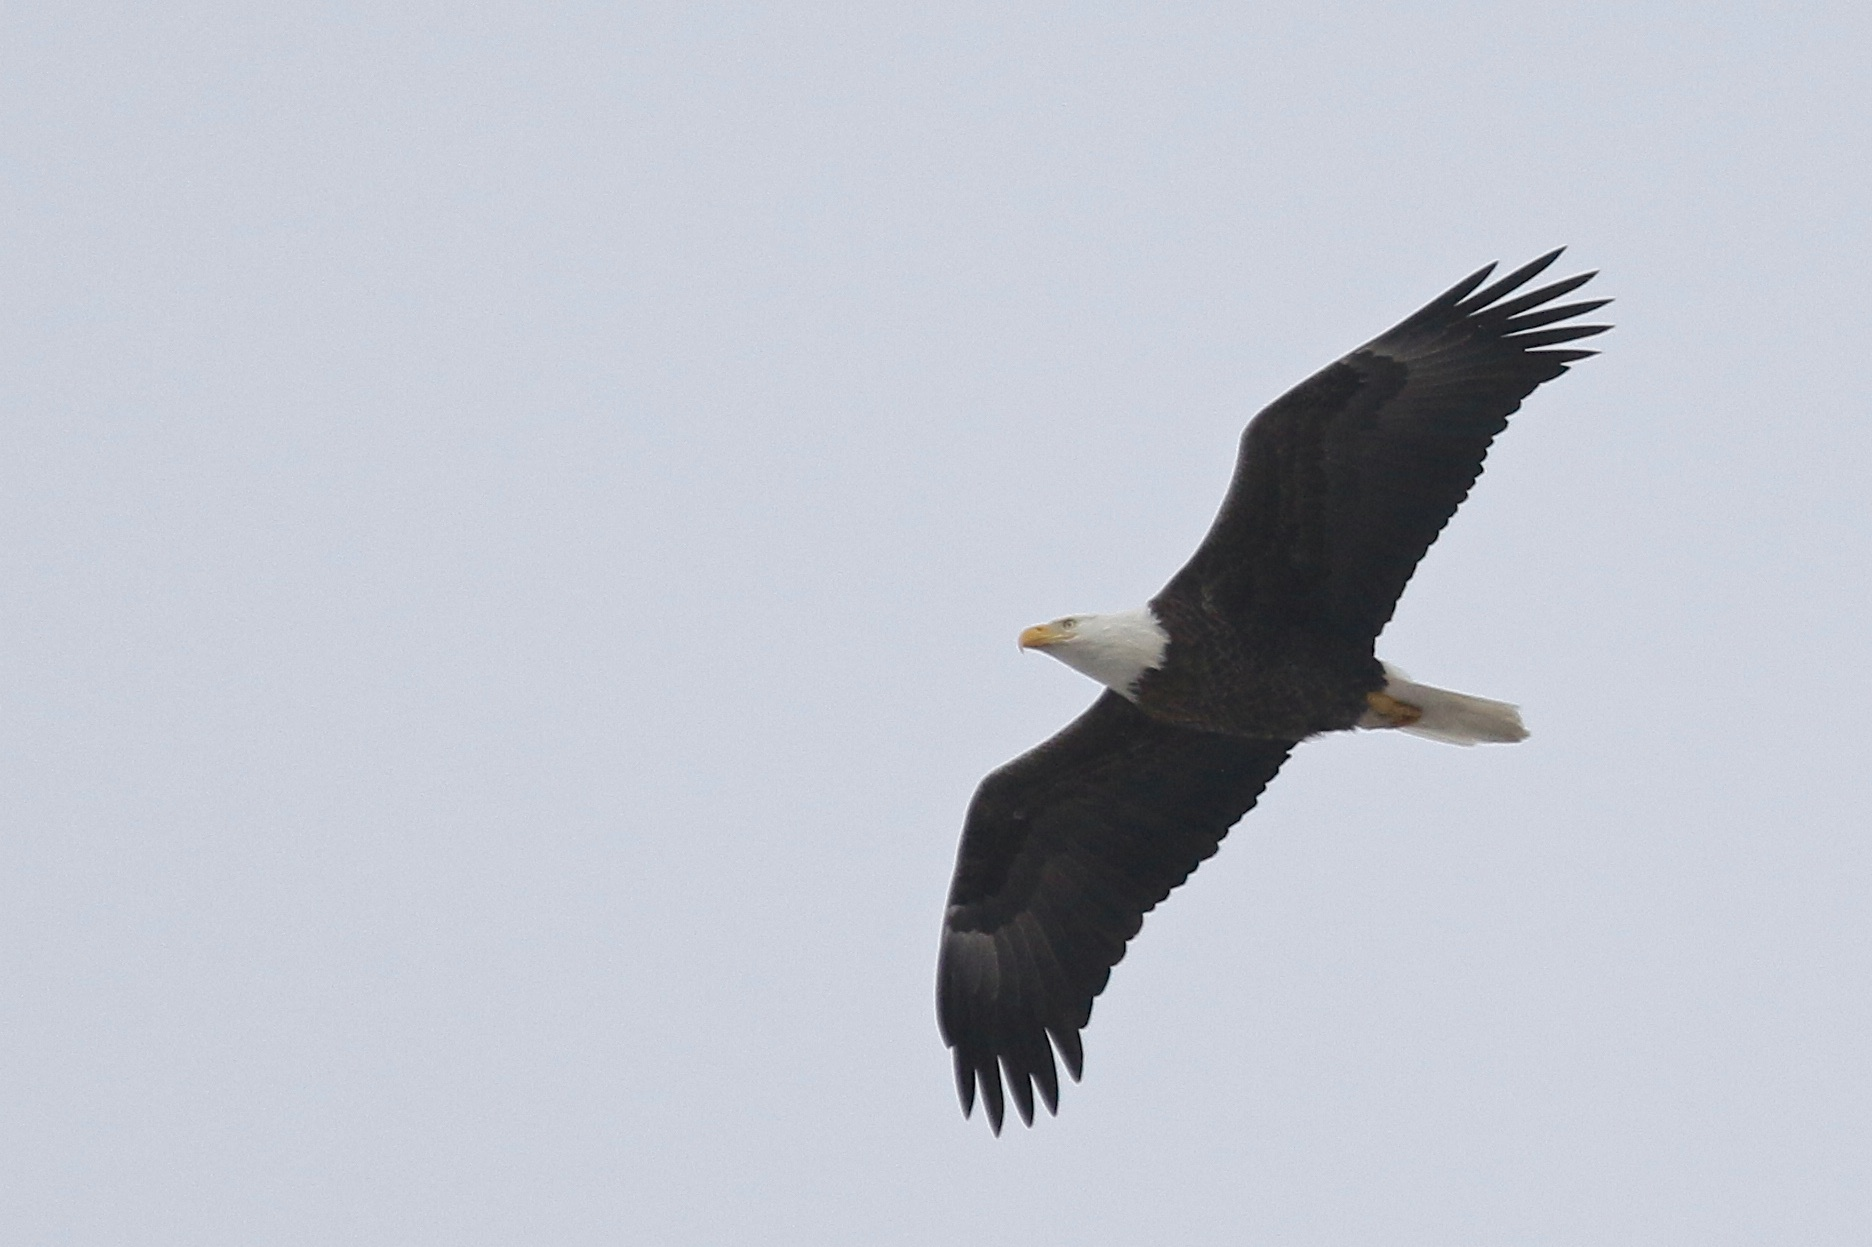 ~An adult Bald Eagle flies over the eastern leg of the Liberty Loop, 3/21/15.~